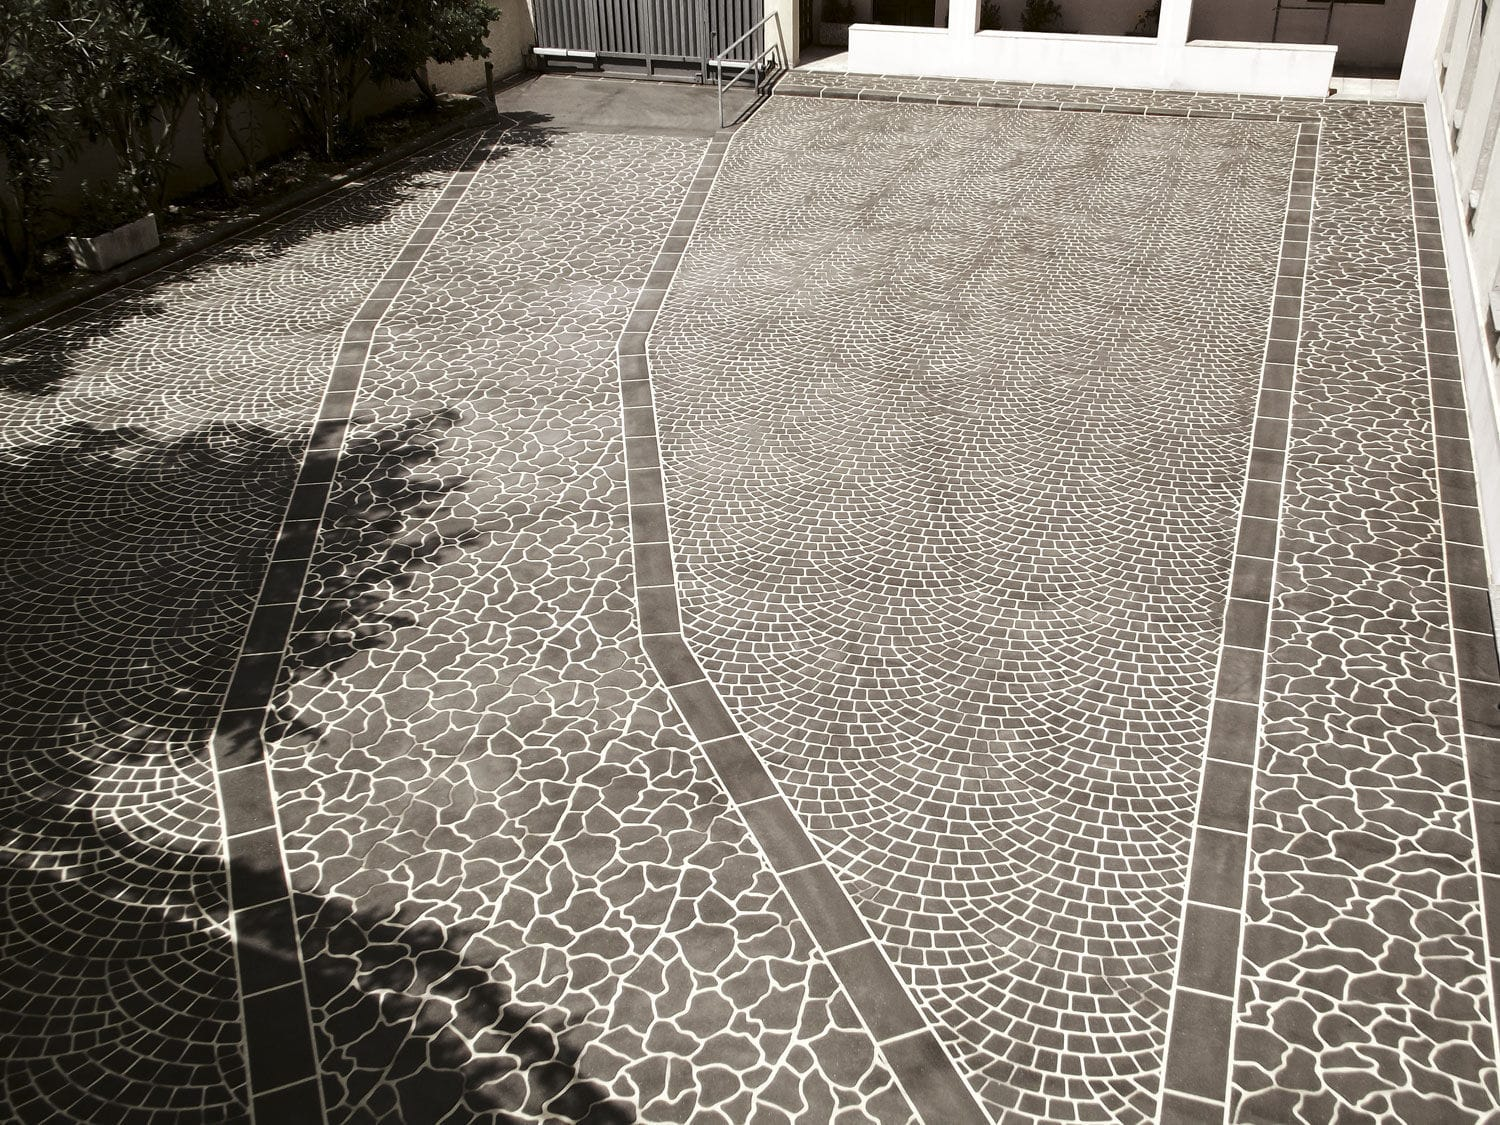 Stamped concrete floor covering / tertiary / textured / paver look